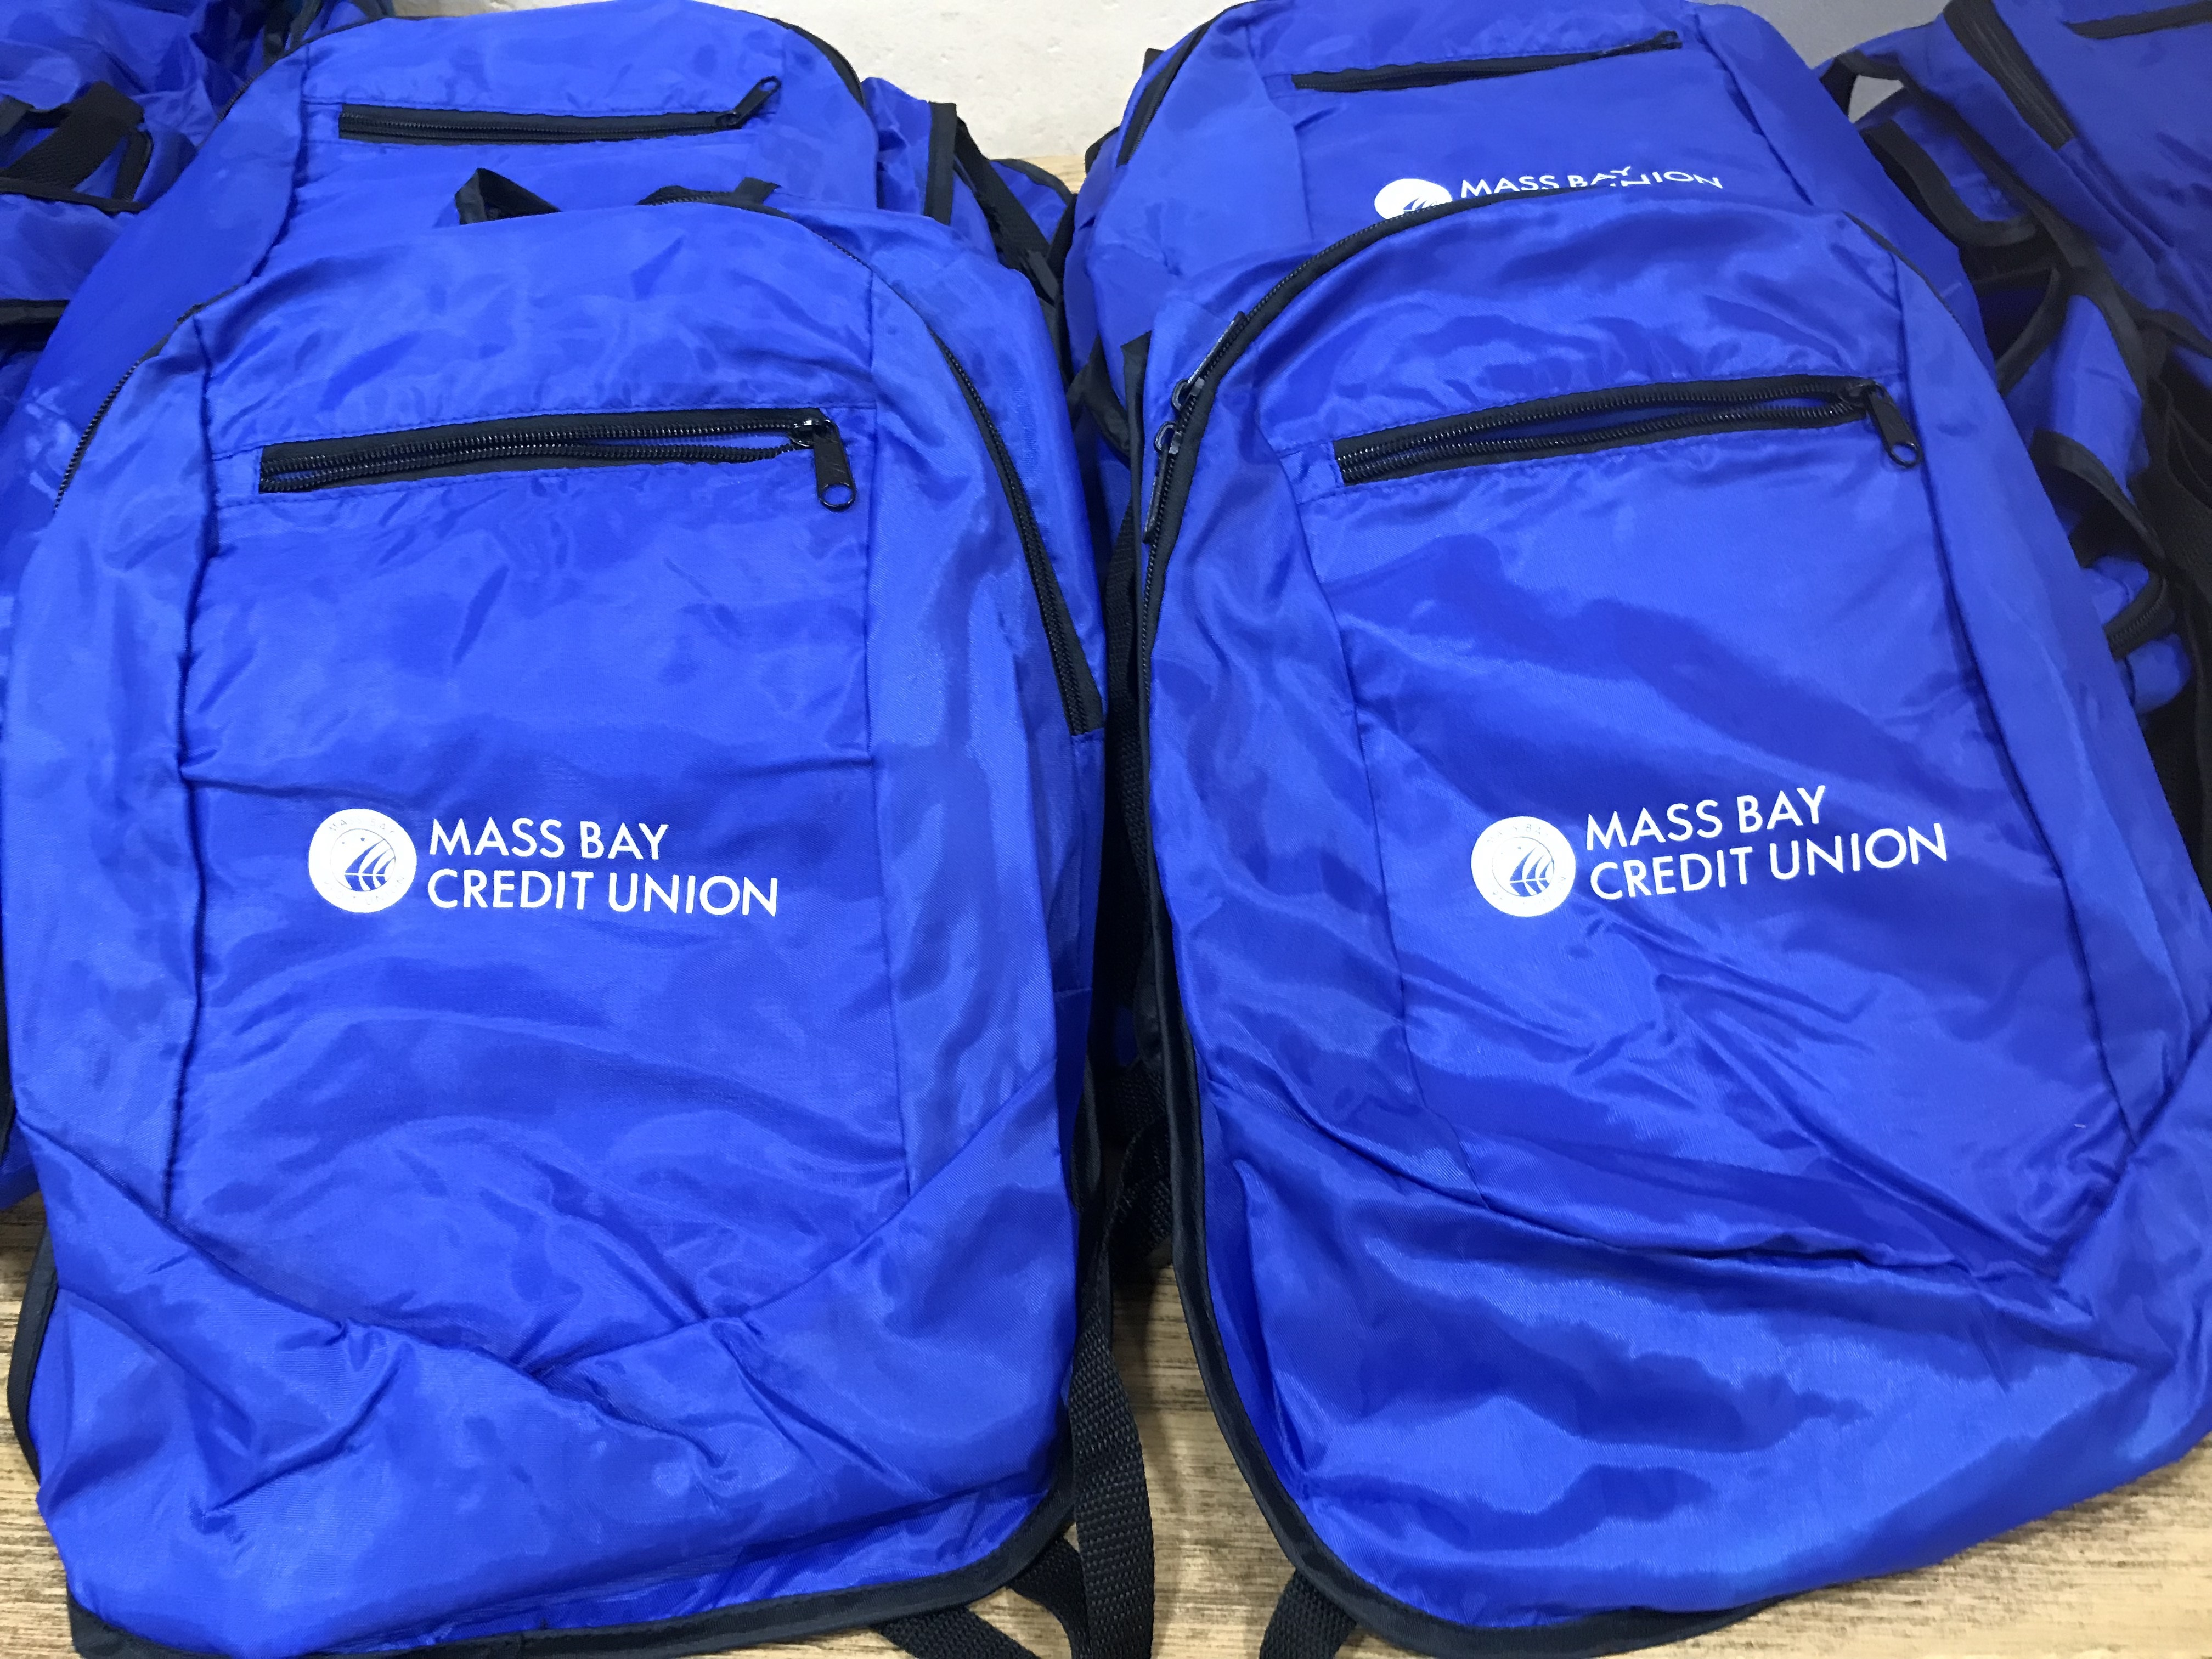 Backpack Donation to the Parker School